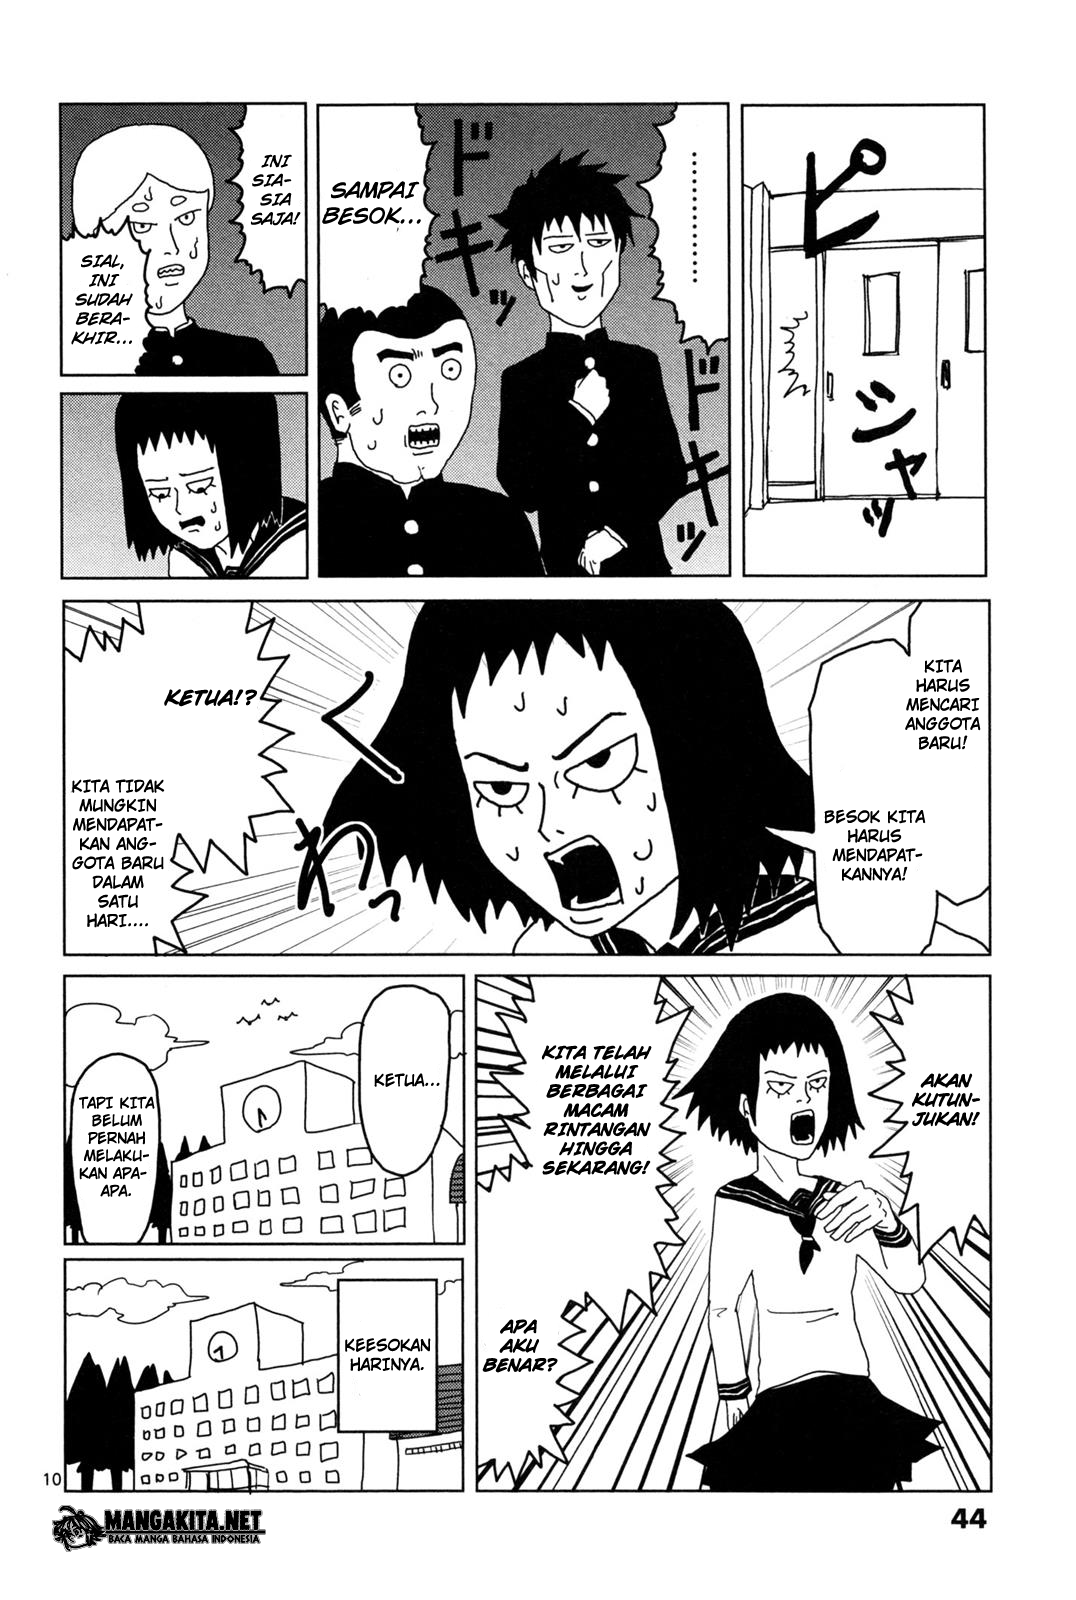 Mob Psycho 100 Chapter 03-11